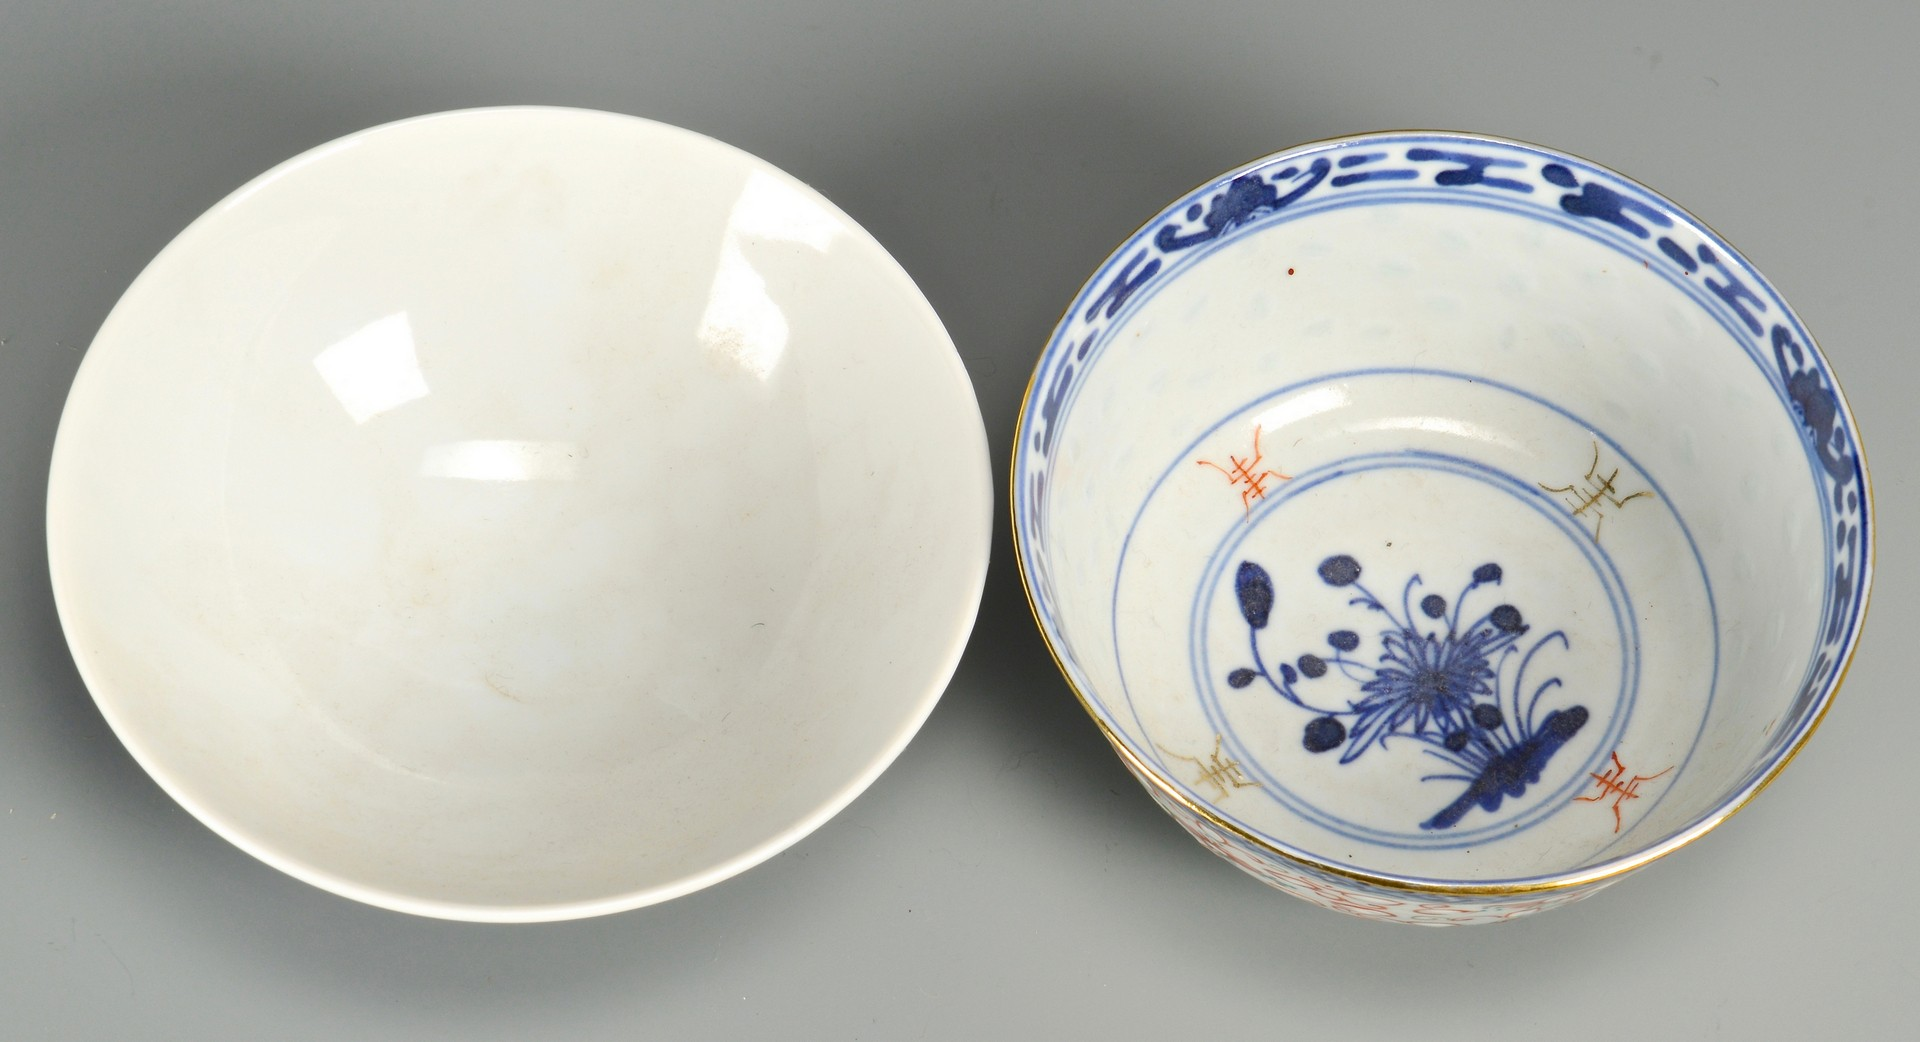 Lot 4010202: Asst. Asian Porcelain, 4 Bowls, 1 Cup, Guanyin